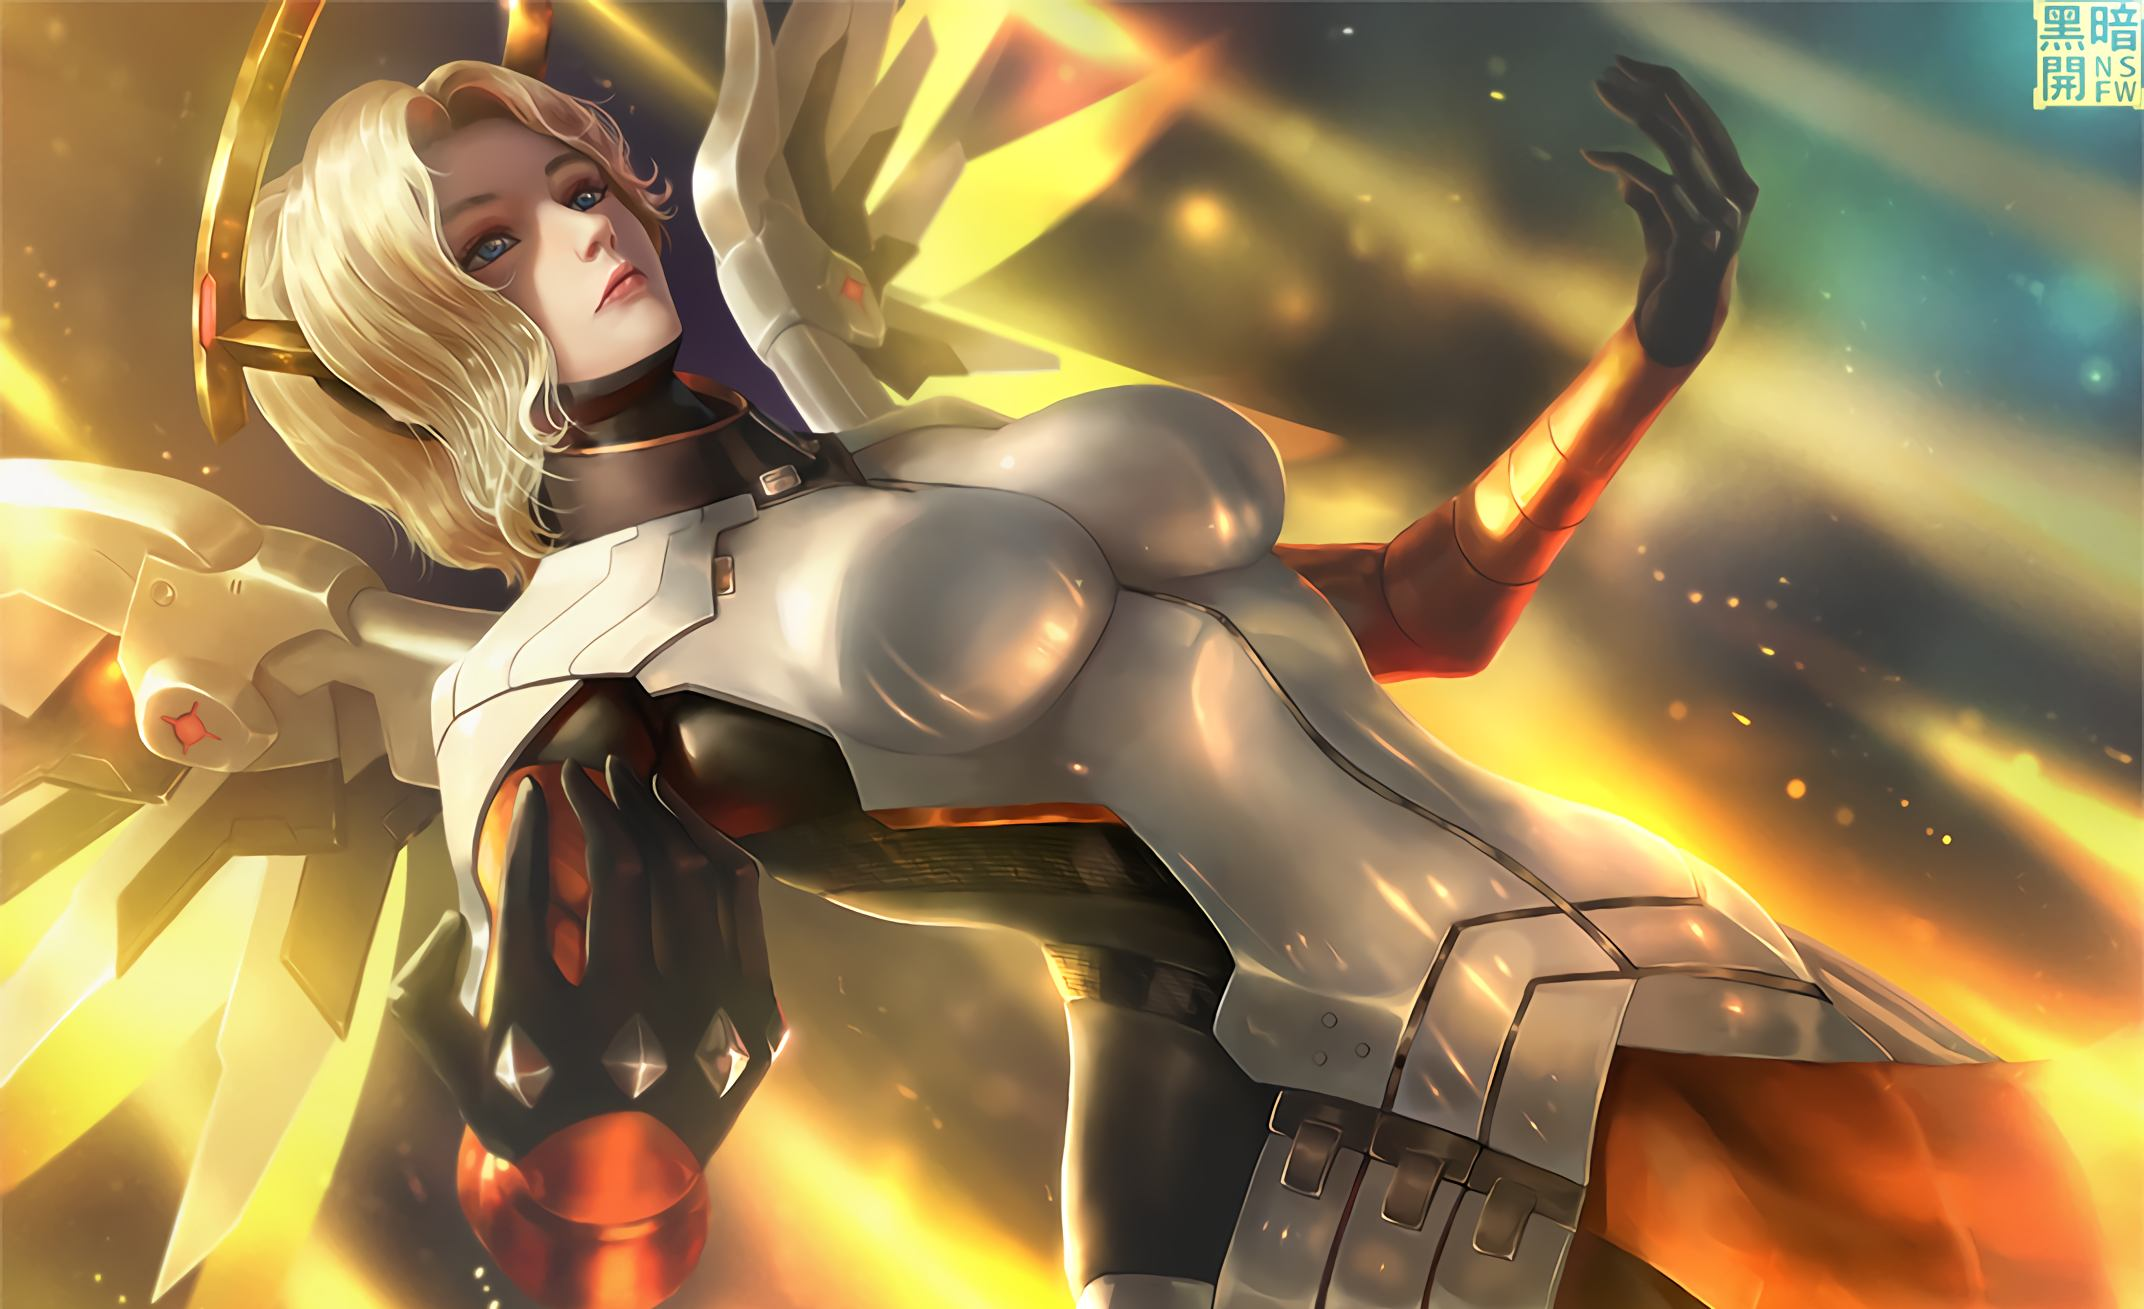 Beautiful Angel Girl Mercy Overwatch Game Wallpaper Artist Limdog Overwatch Waifu Clan Anime Pics Digital Art